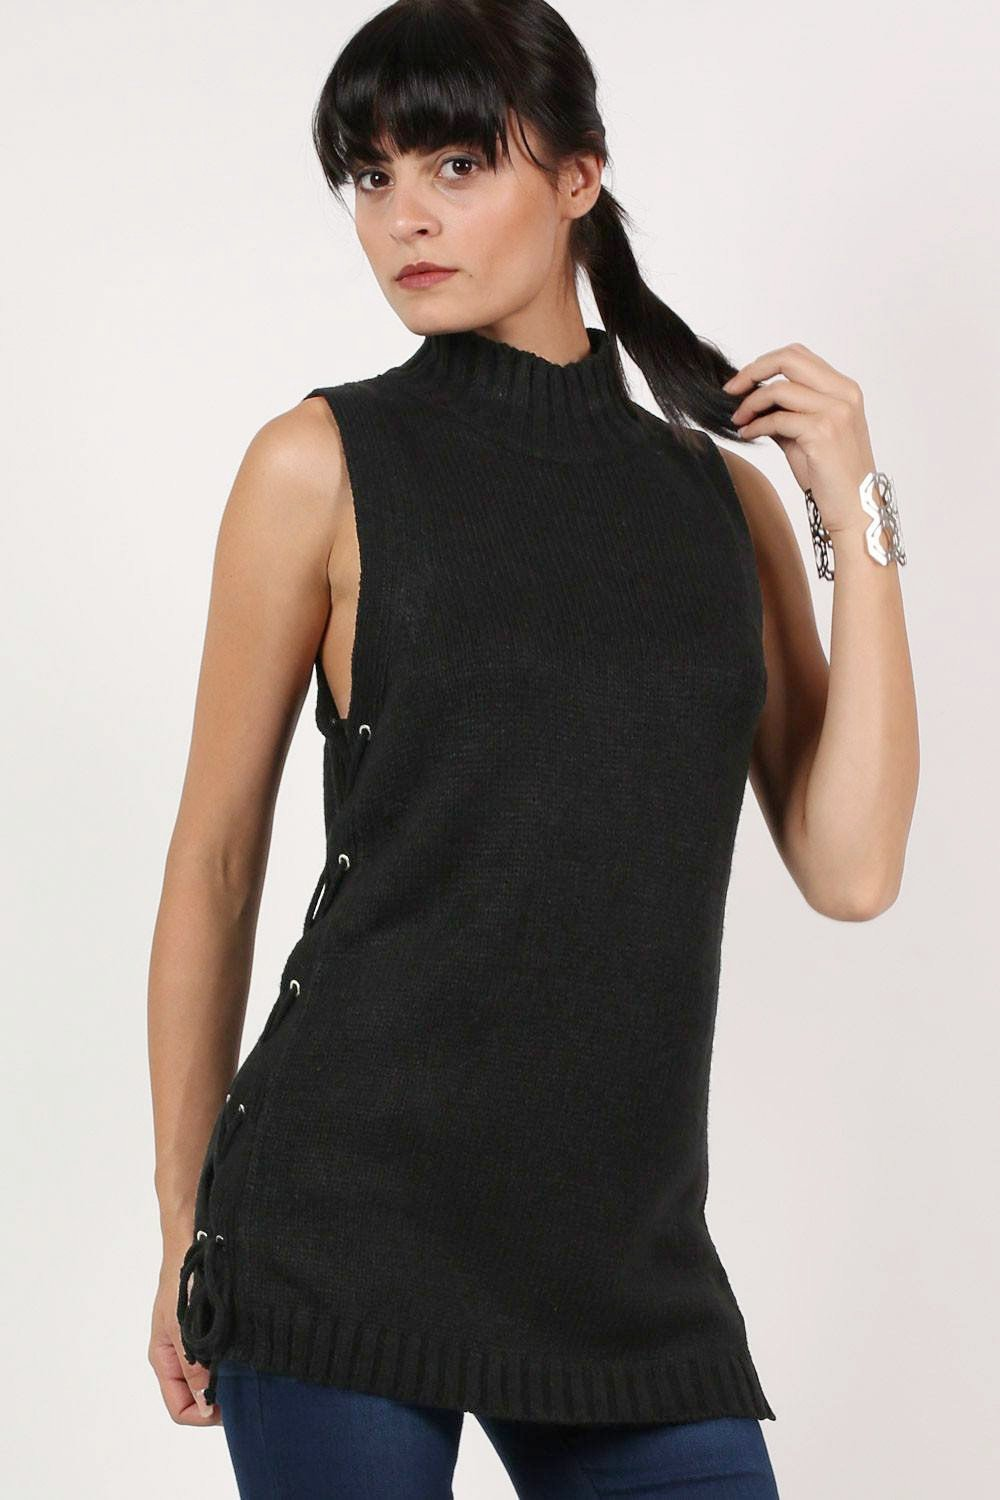 High Neck Lace Up Sleeveless Knitted Tunic Jumper in Black 0